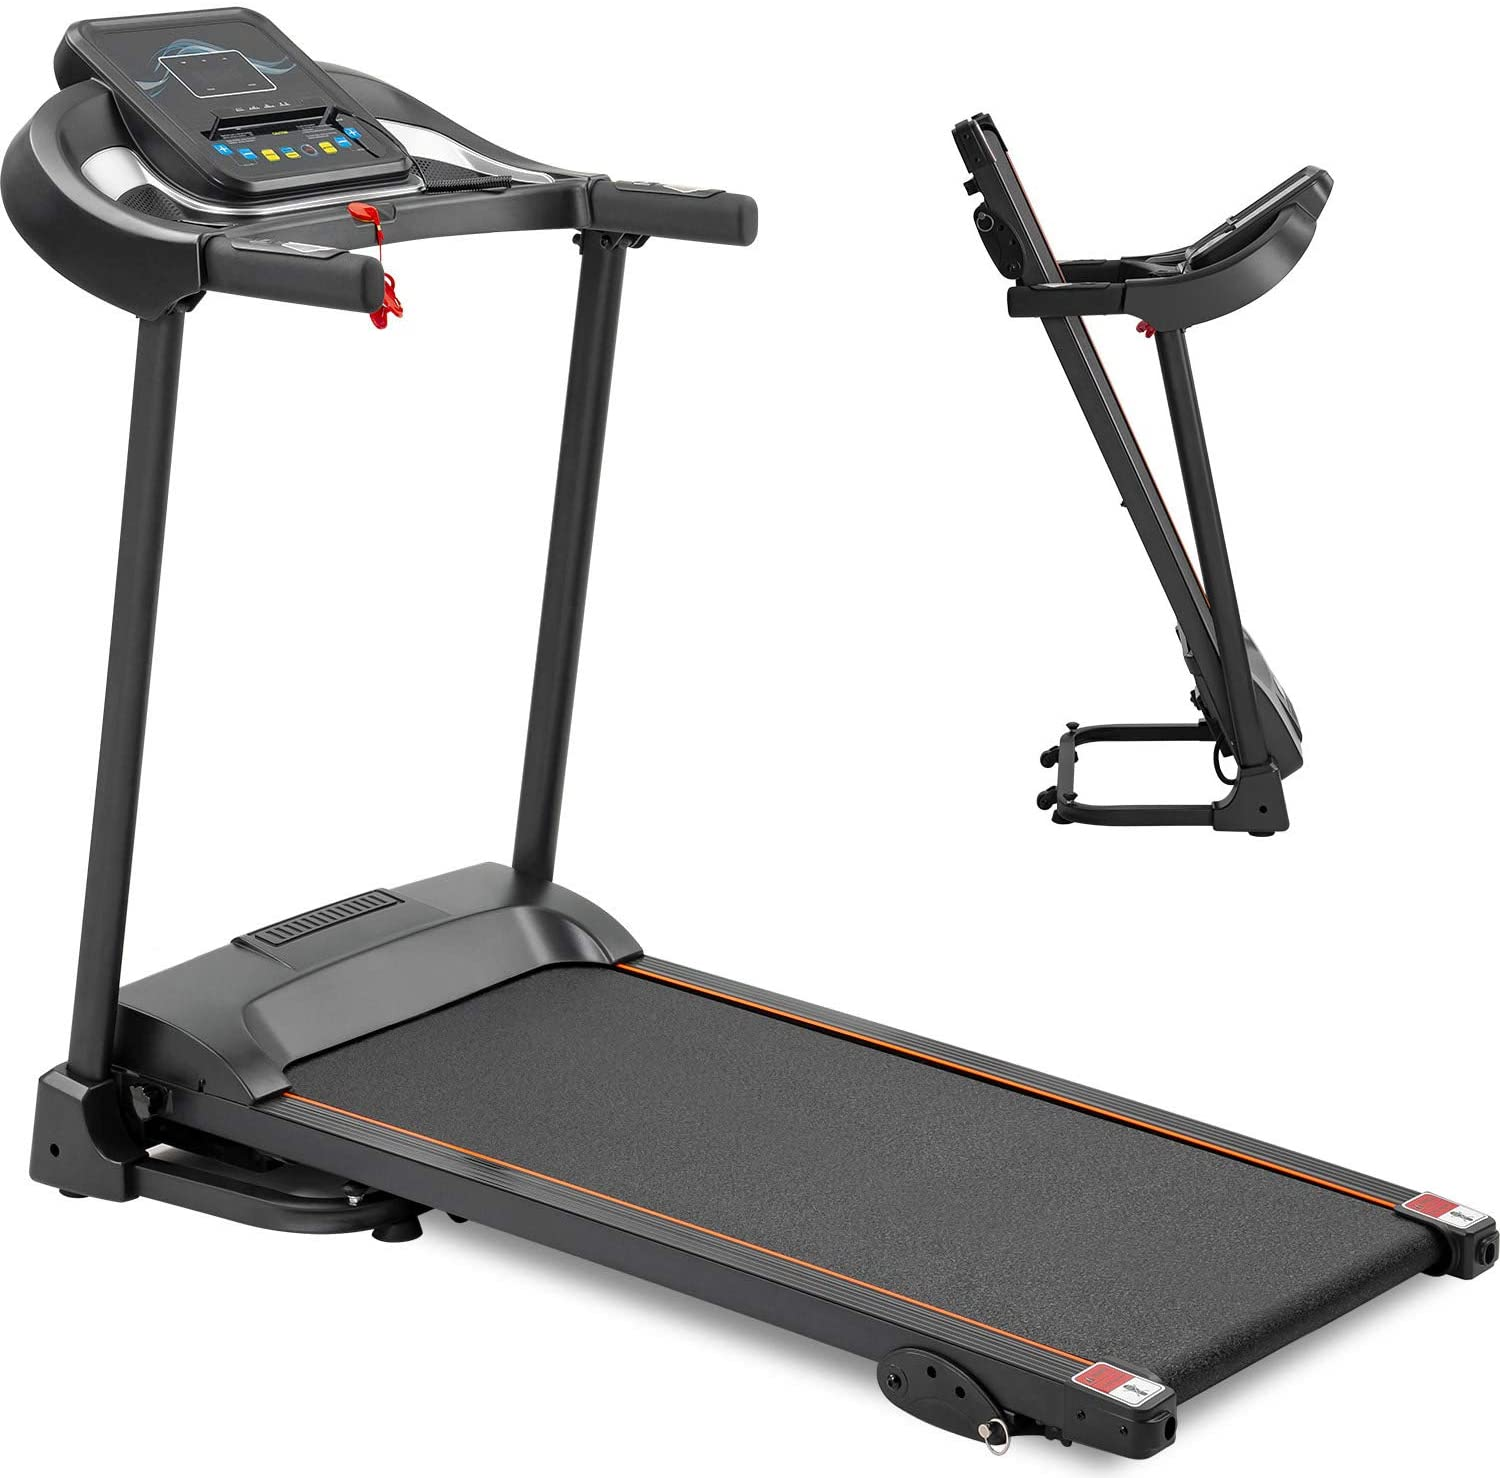 Electric Folding Treadmill Easy Assembly Compact Fitness Motorized Running Jogging Exercise Machine, 3 Incline Adjustment 12 Preset Programs LED Display Heart Rate Monitor, Phone & Water Bottle Holder